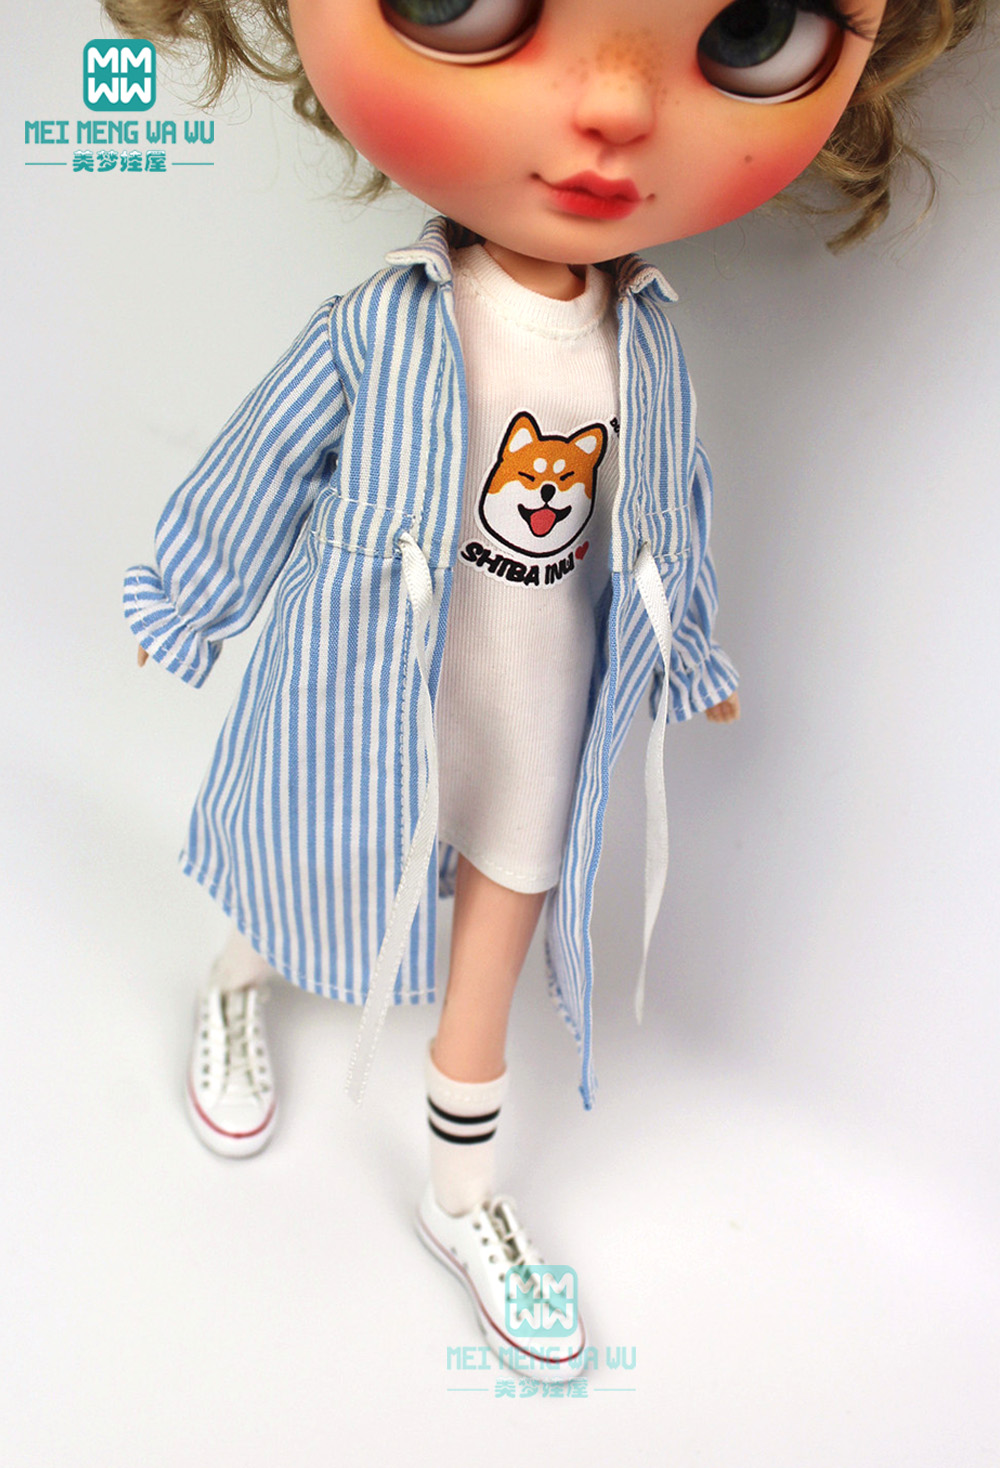 1pcs Blyth Doll Clothes Casual Striped Shirt, Long T-shirt For Blyth Azone1/6 Doll Accessories